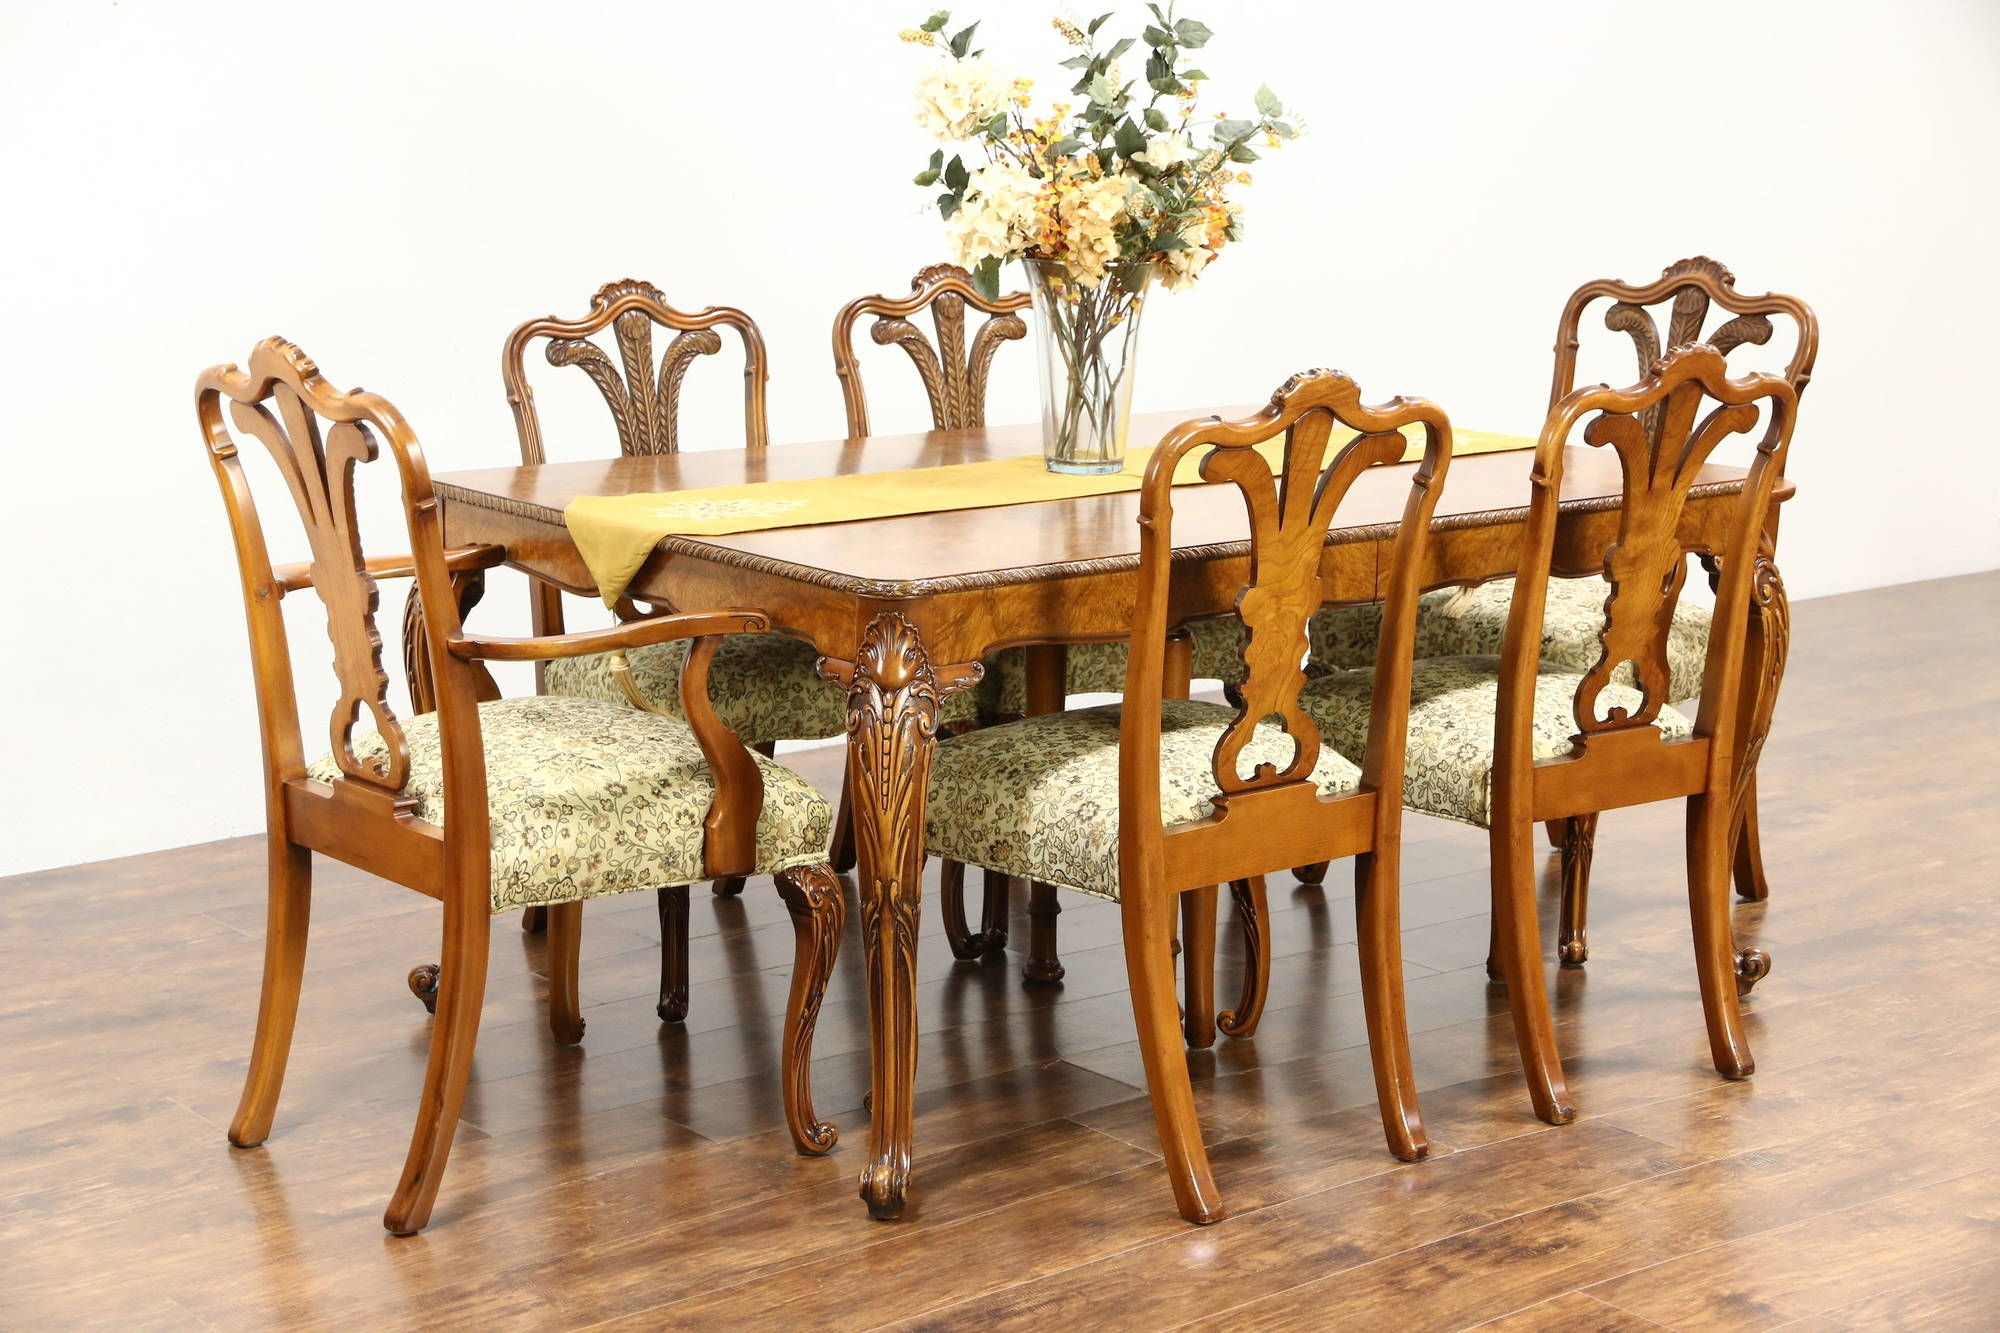 Dining Set Table 2 Leaves 6 Chairs 1940 S Vintage Carved Olive Ash Burl 26790 Dining Table Setting Dining Set Chair